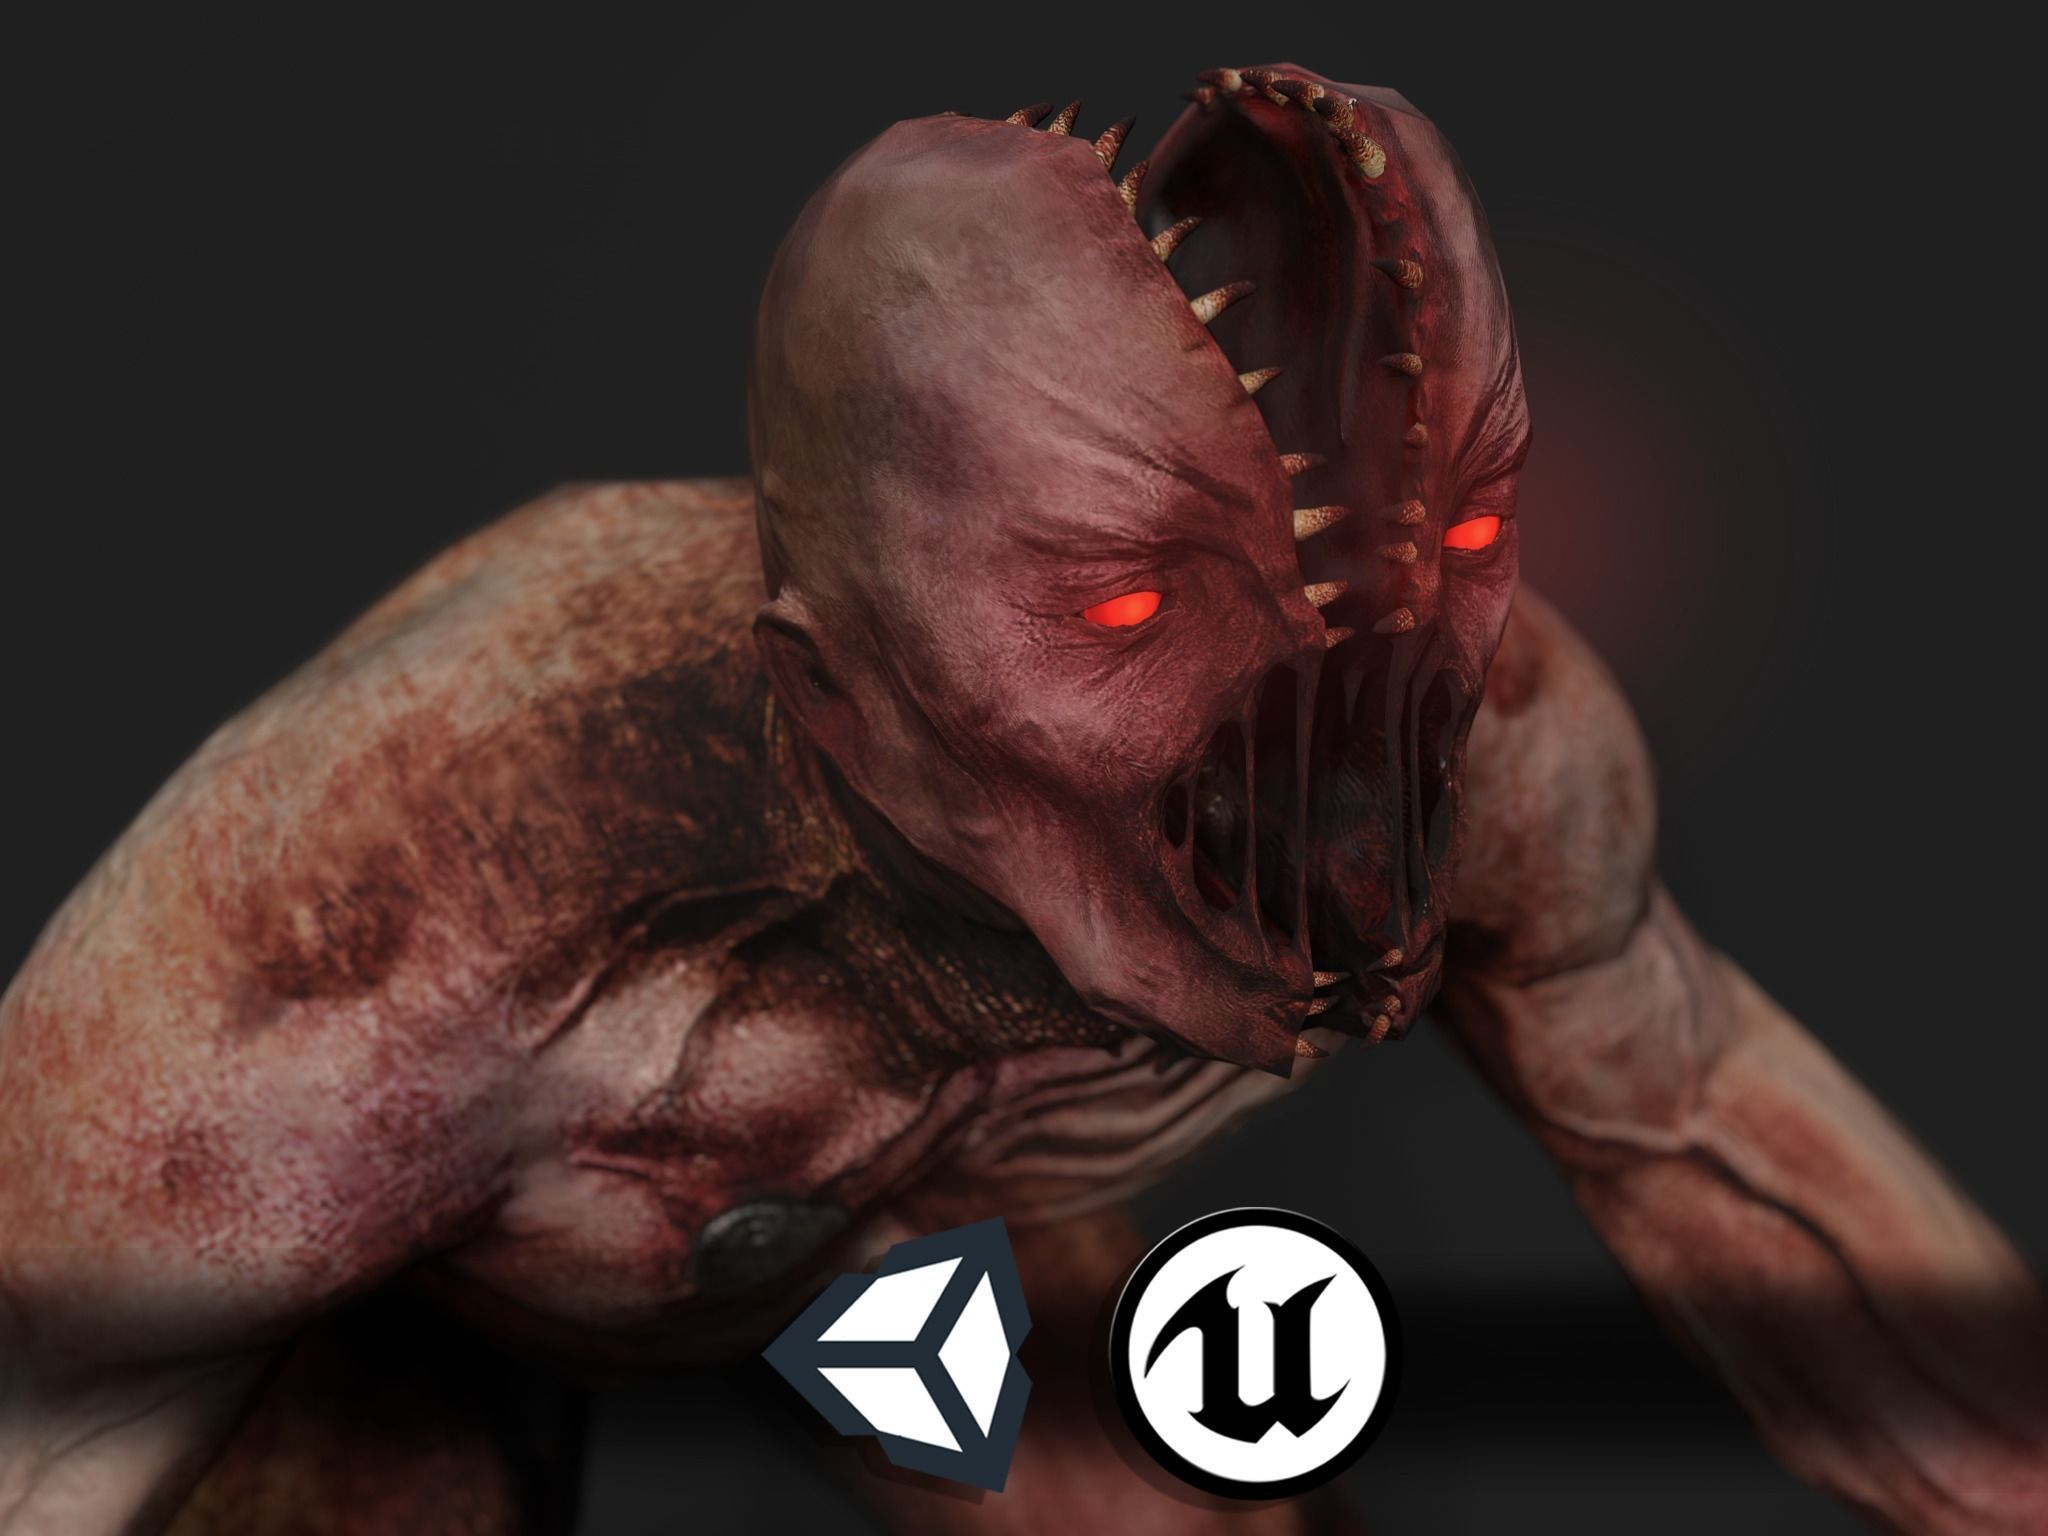 Creepy Horror Monster 2 - PBR and Animated